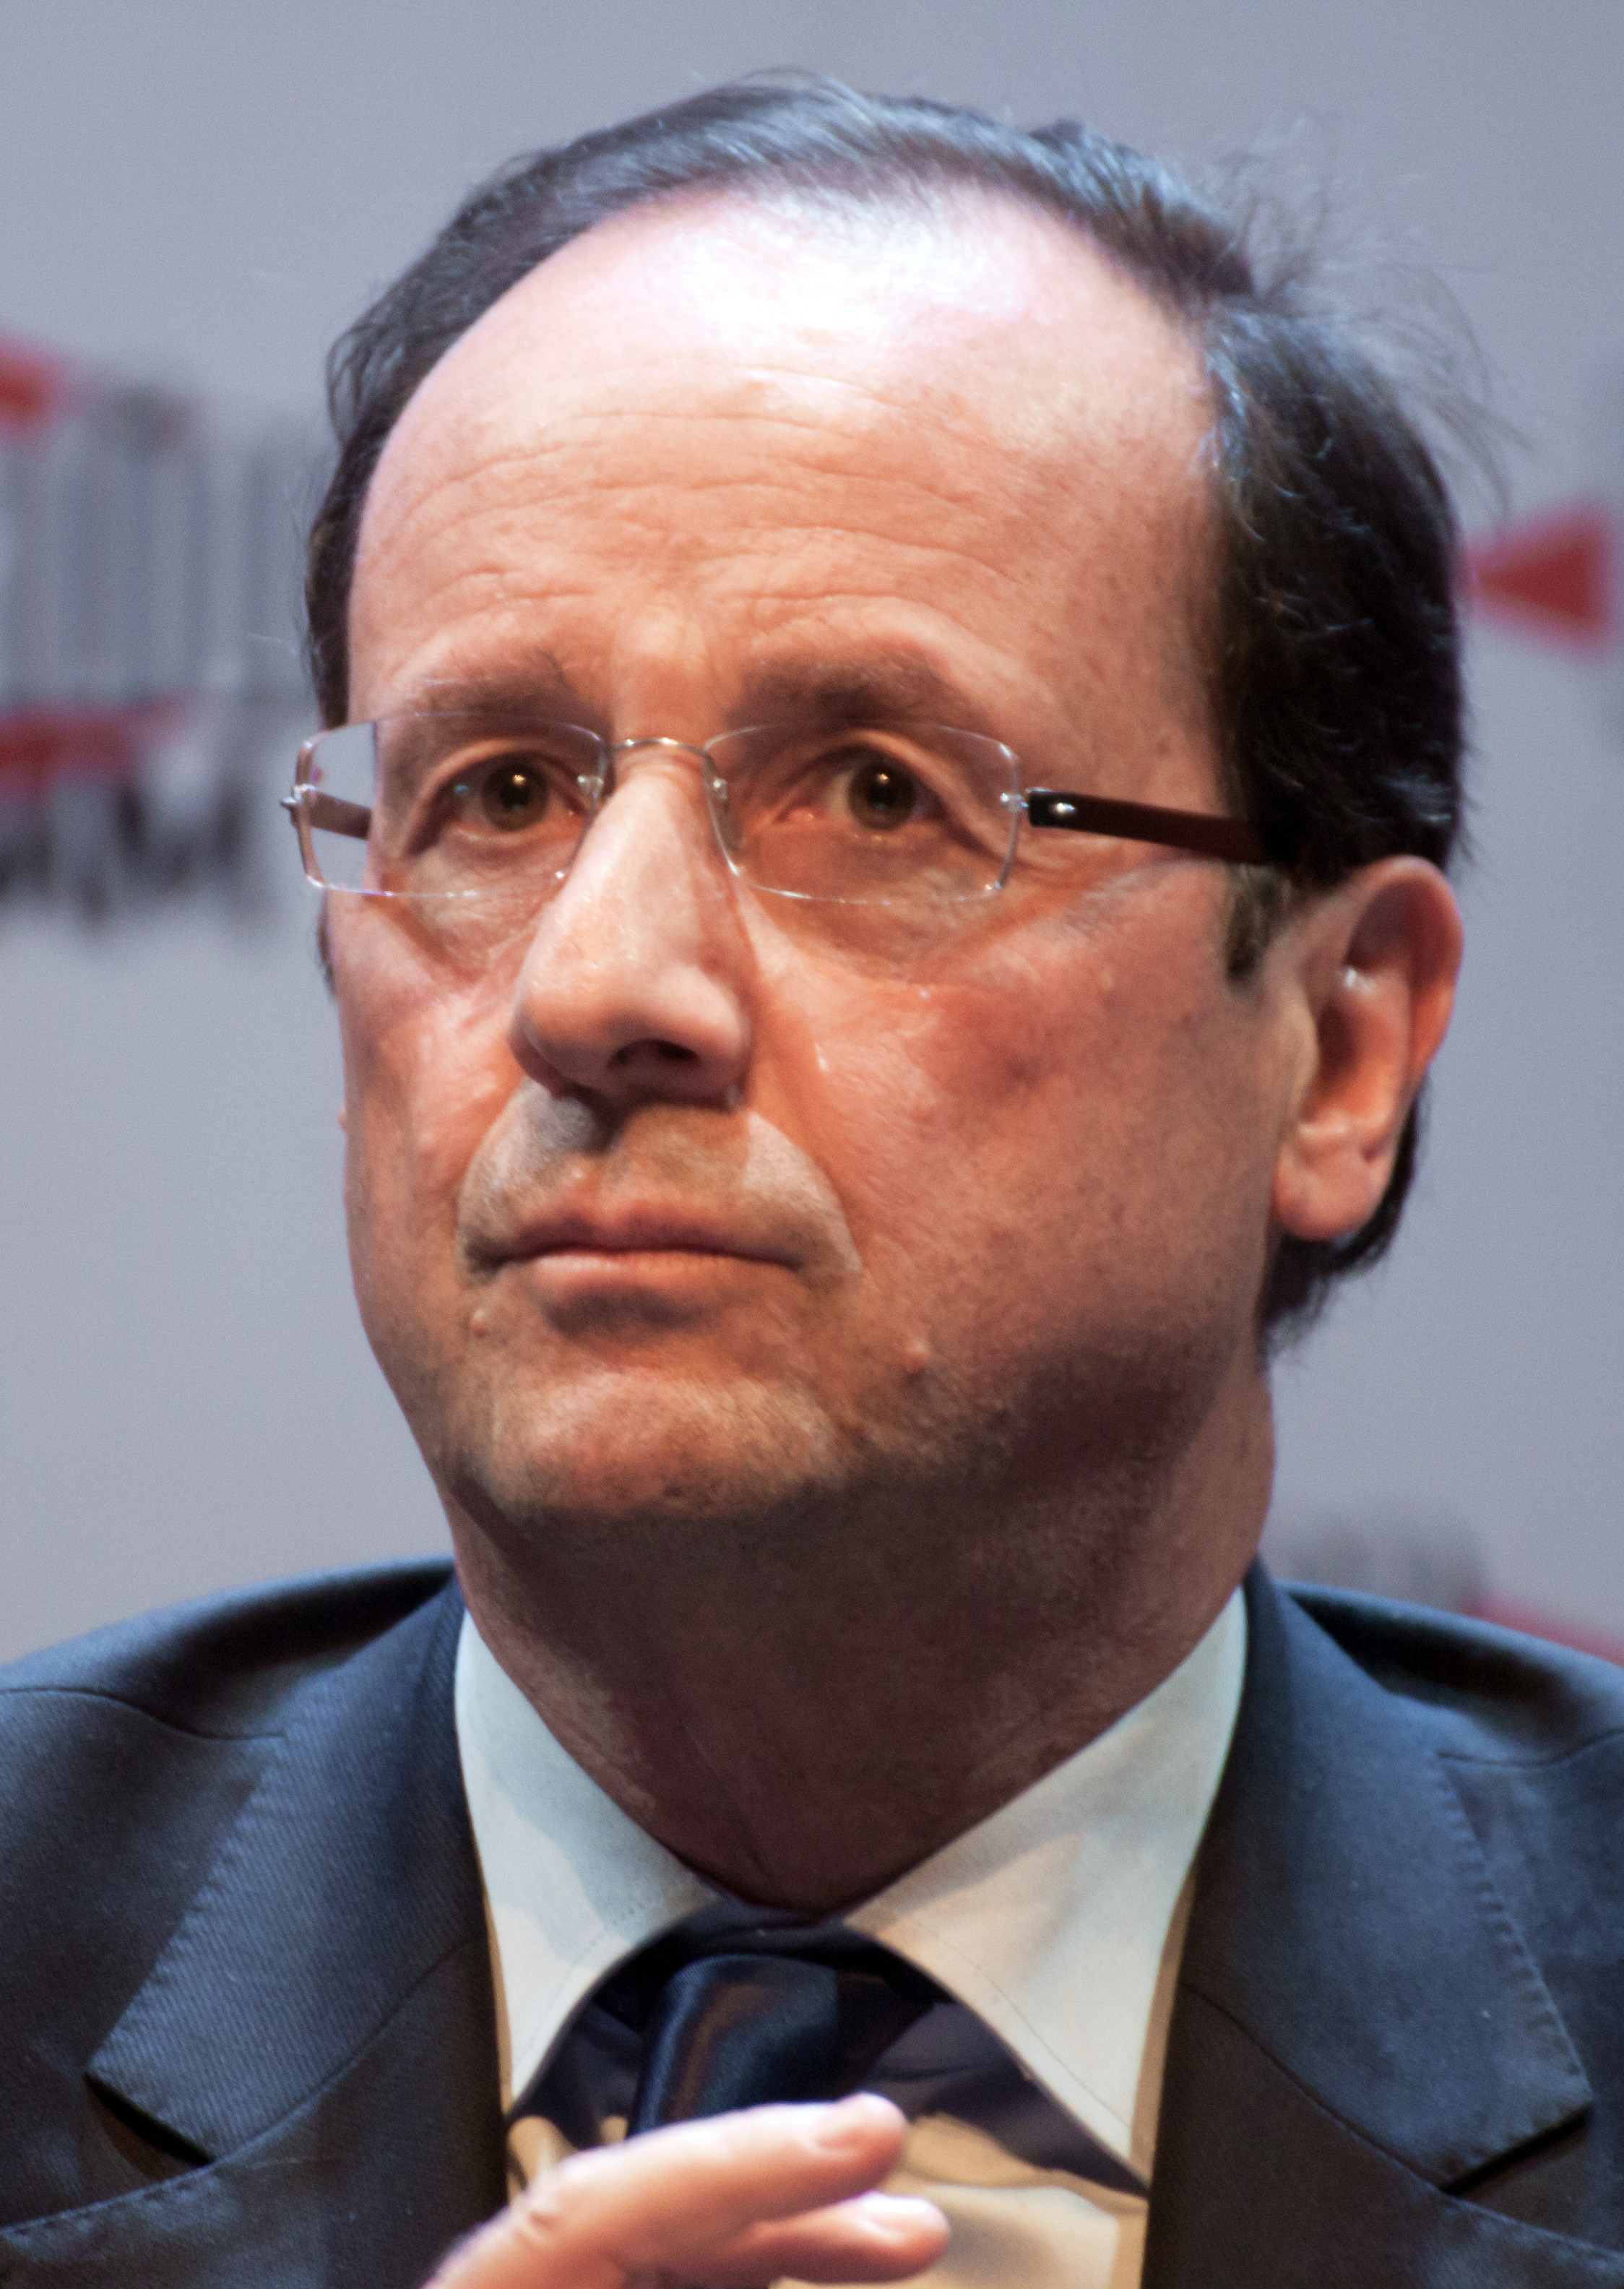 File:François Hollande - Janvier 2012 (cropped).jpg